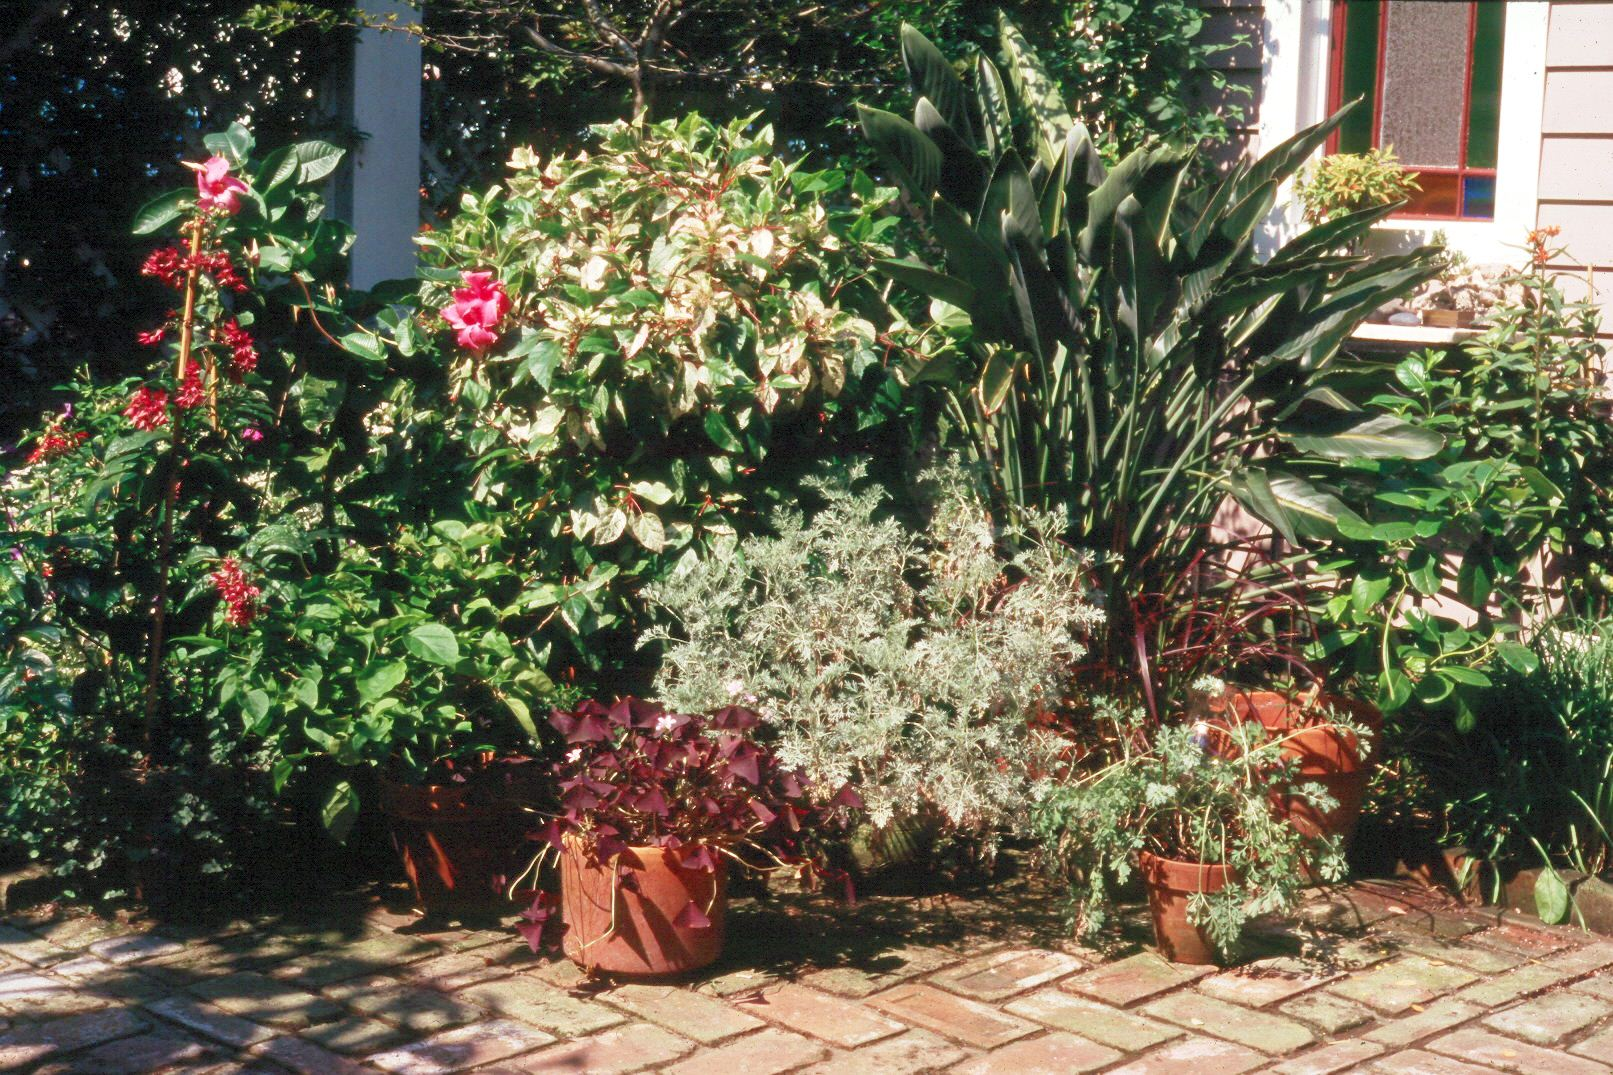 Different sizes of containers can hold a variety of plants for patios